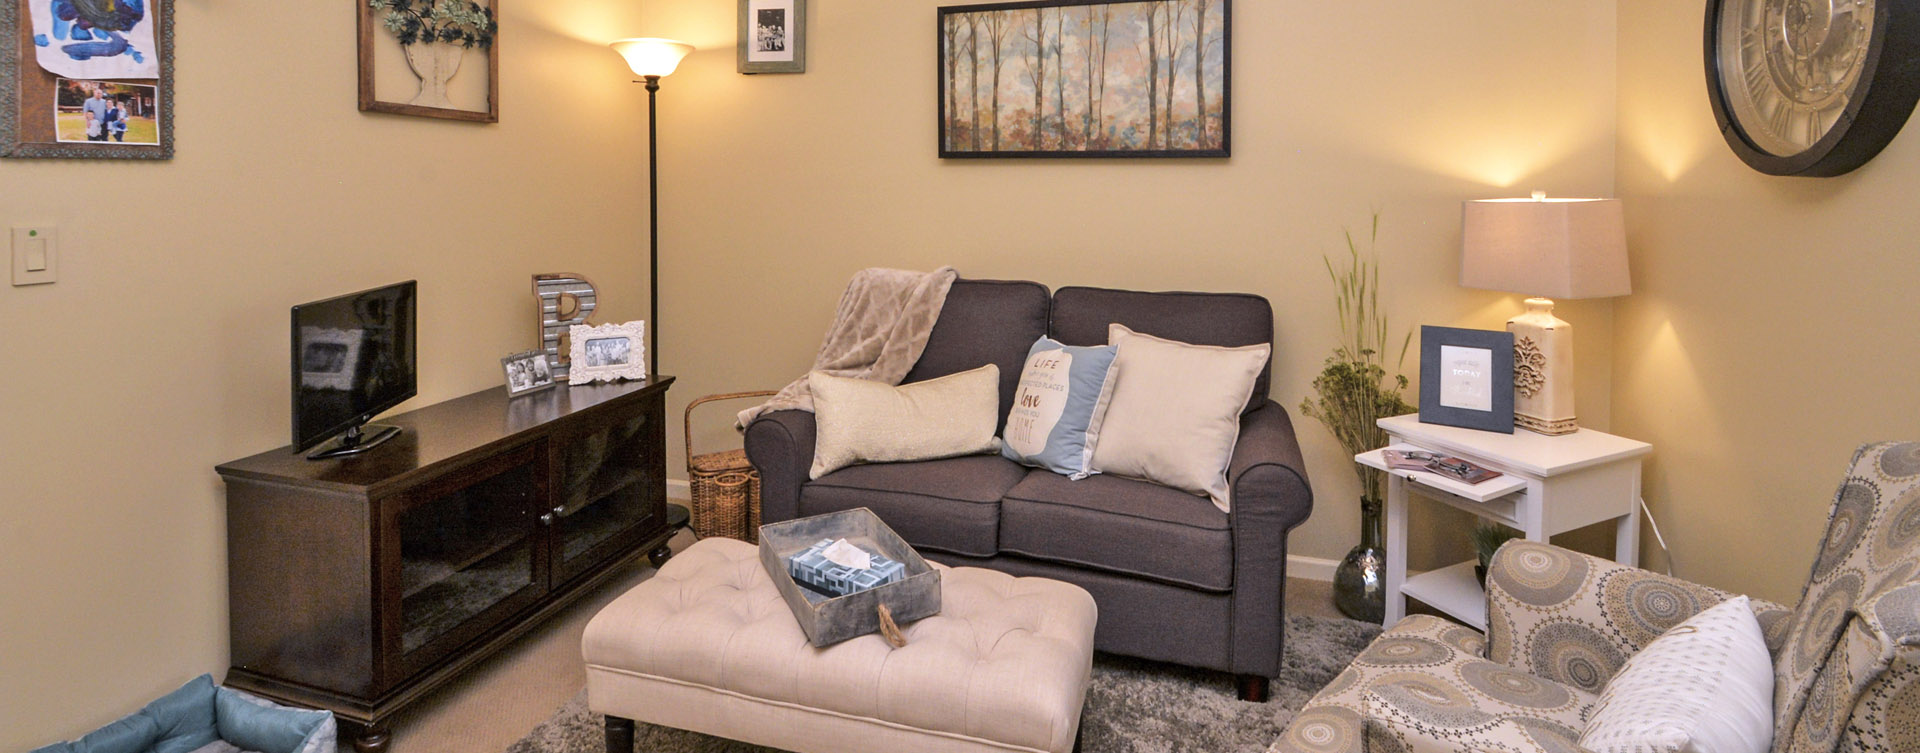 Get a new lease on life with a cozy apartment at Bickford of St. Charles